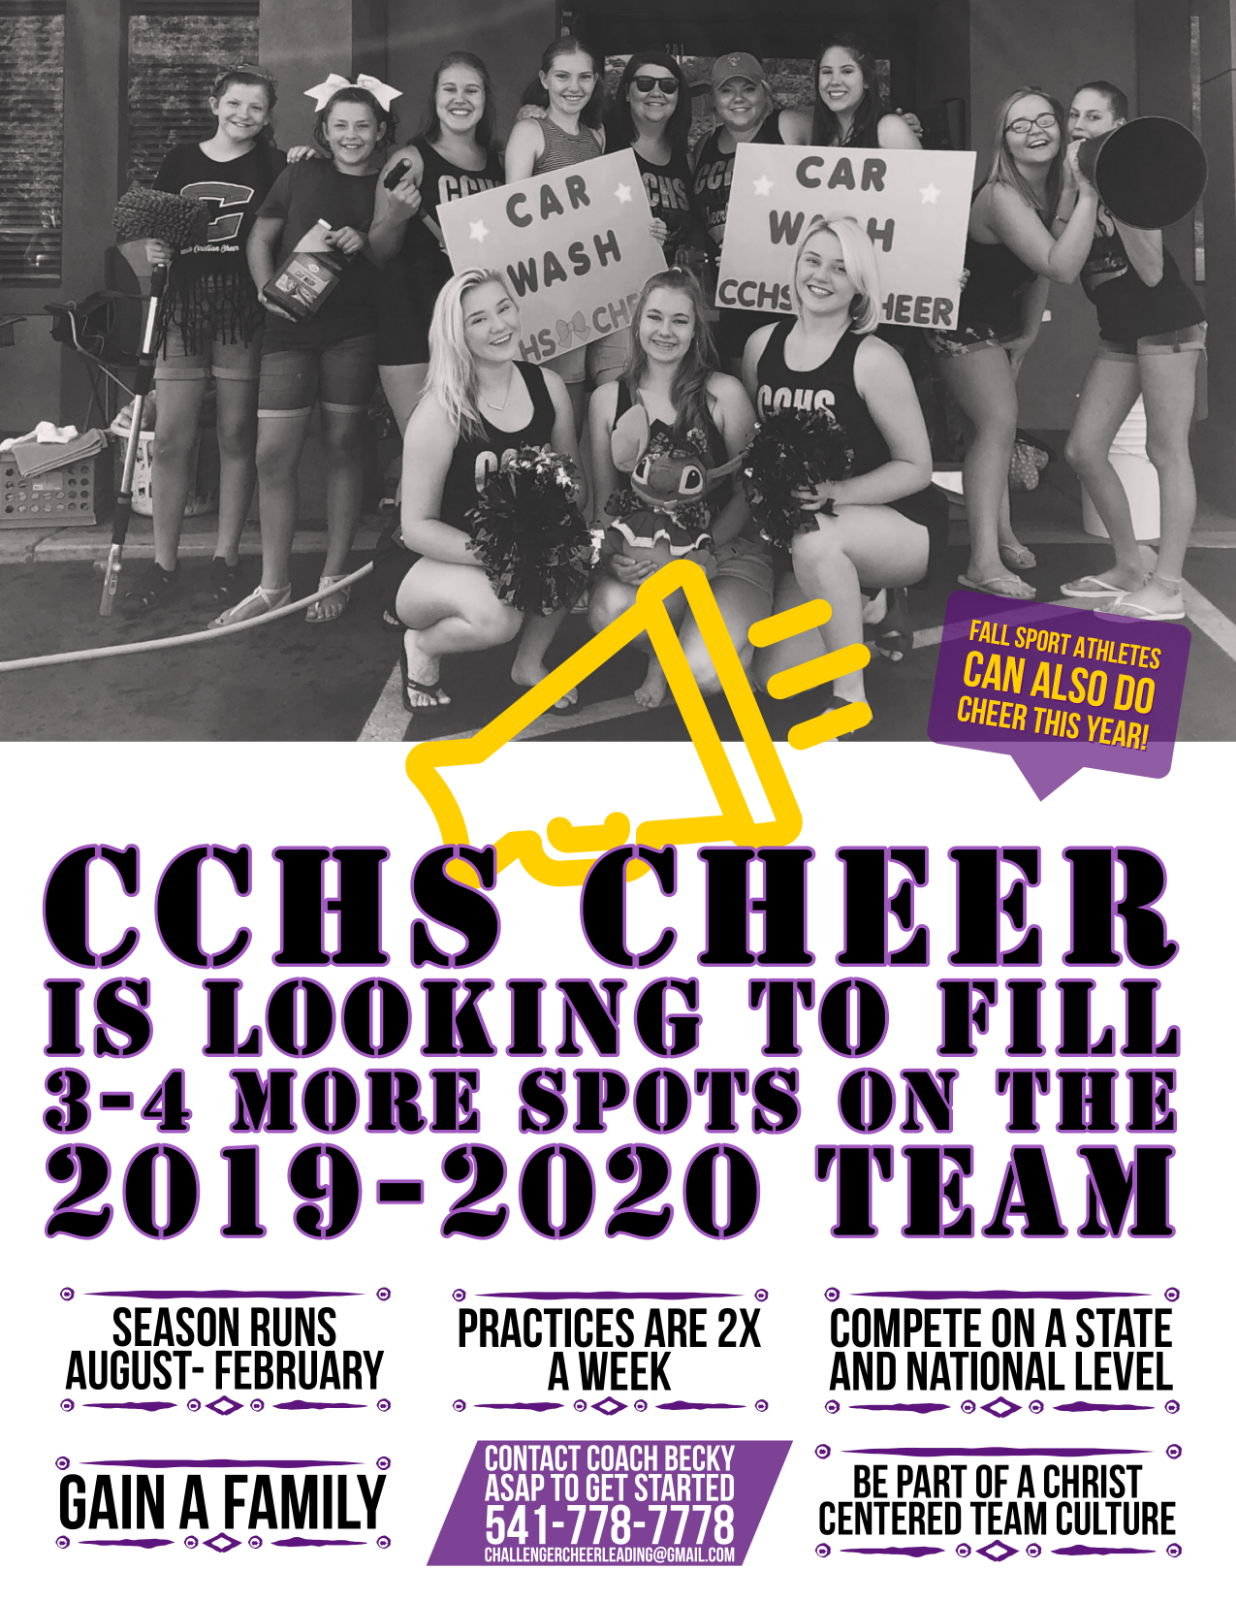 Challenger Cheer: There's Room For More